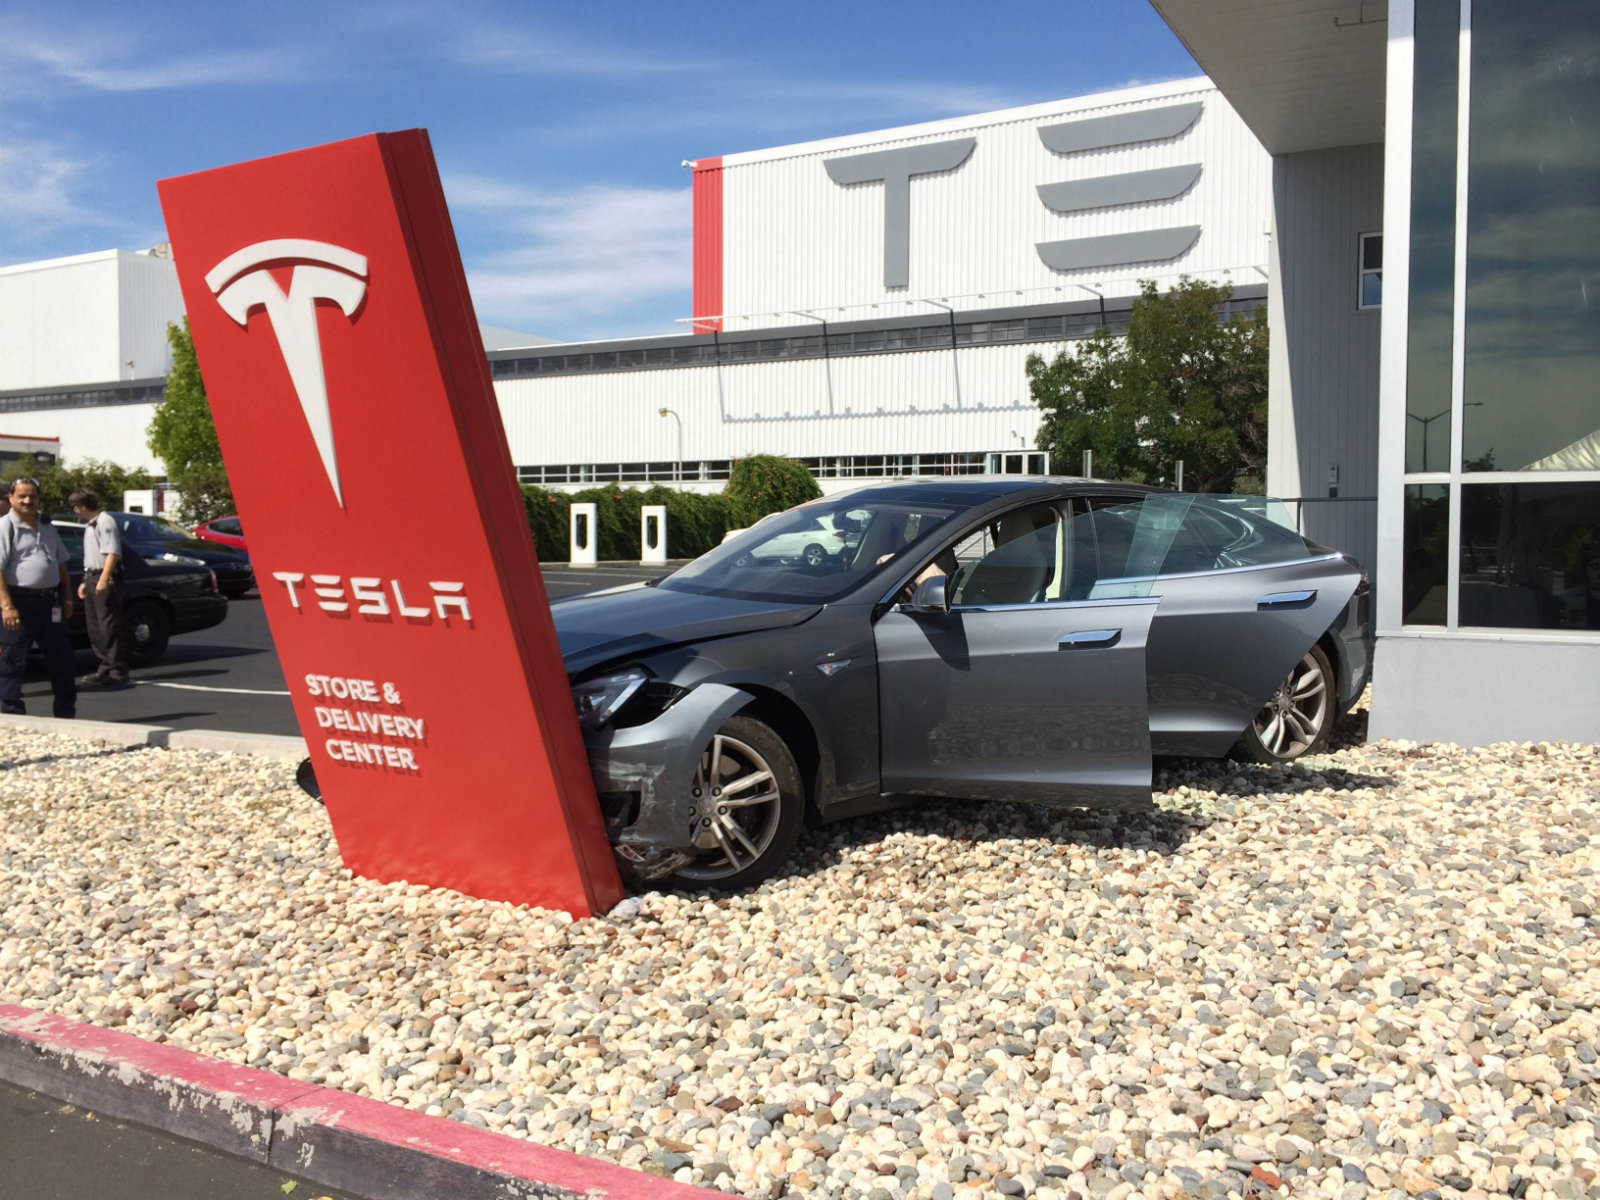 Tesla model s crashed before leaving fremont store delivery center